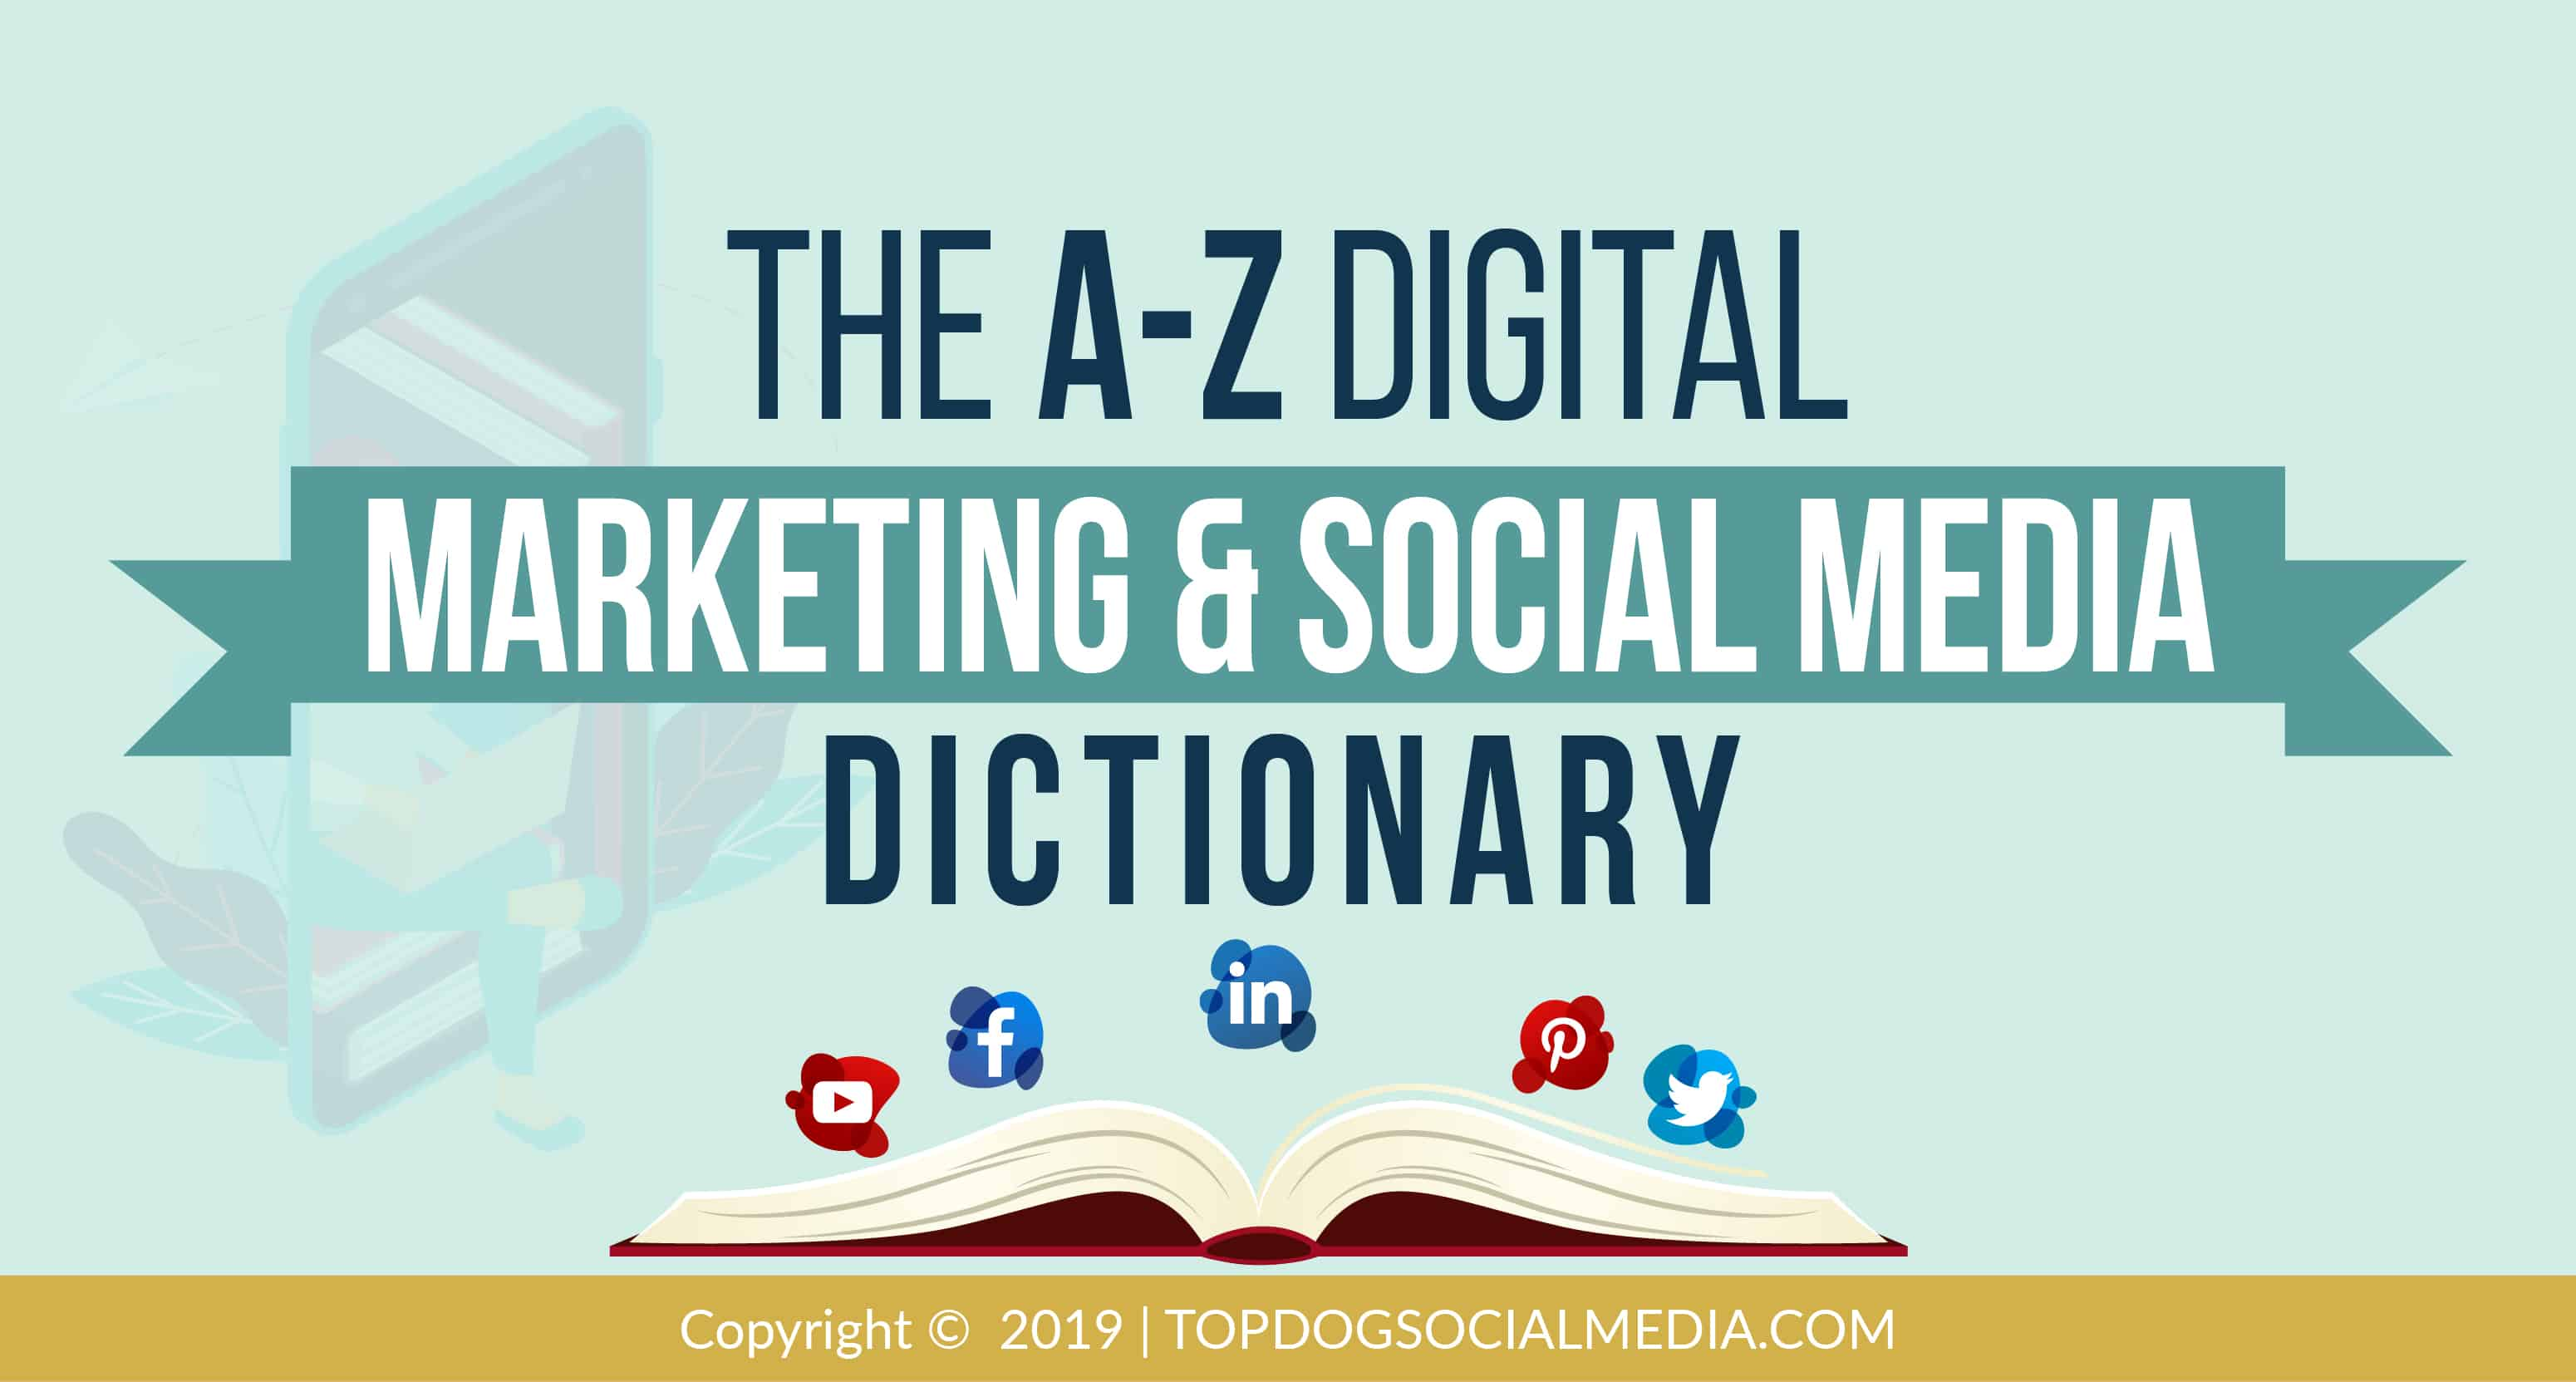 The A-Z Digital Marketing & Social Media Dictionary